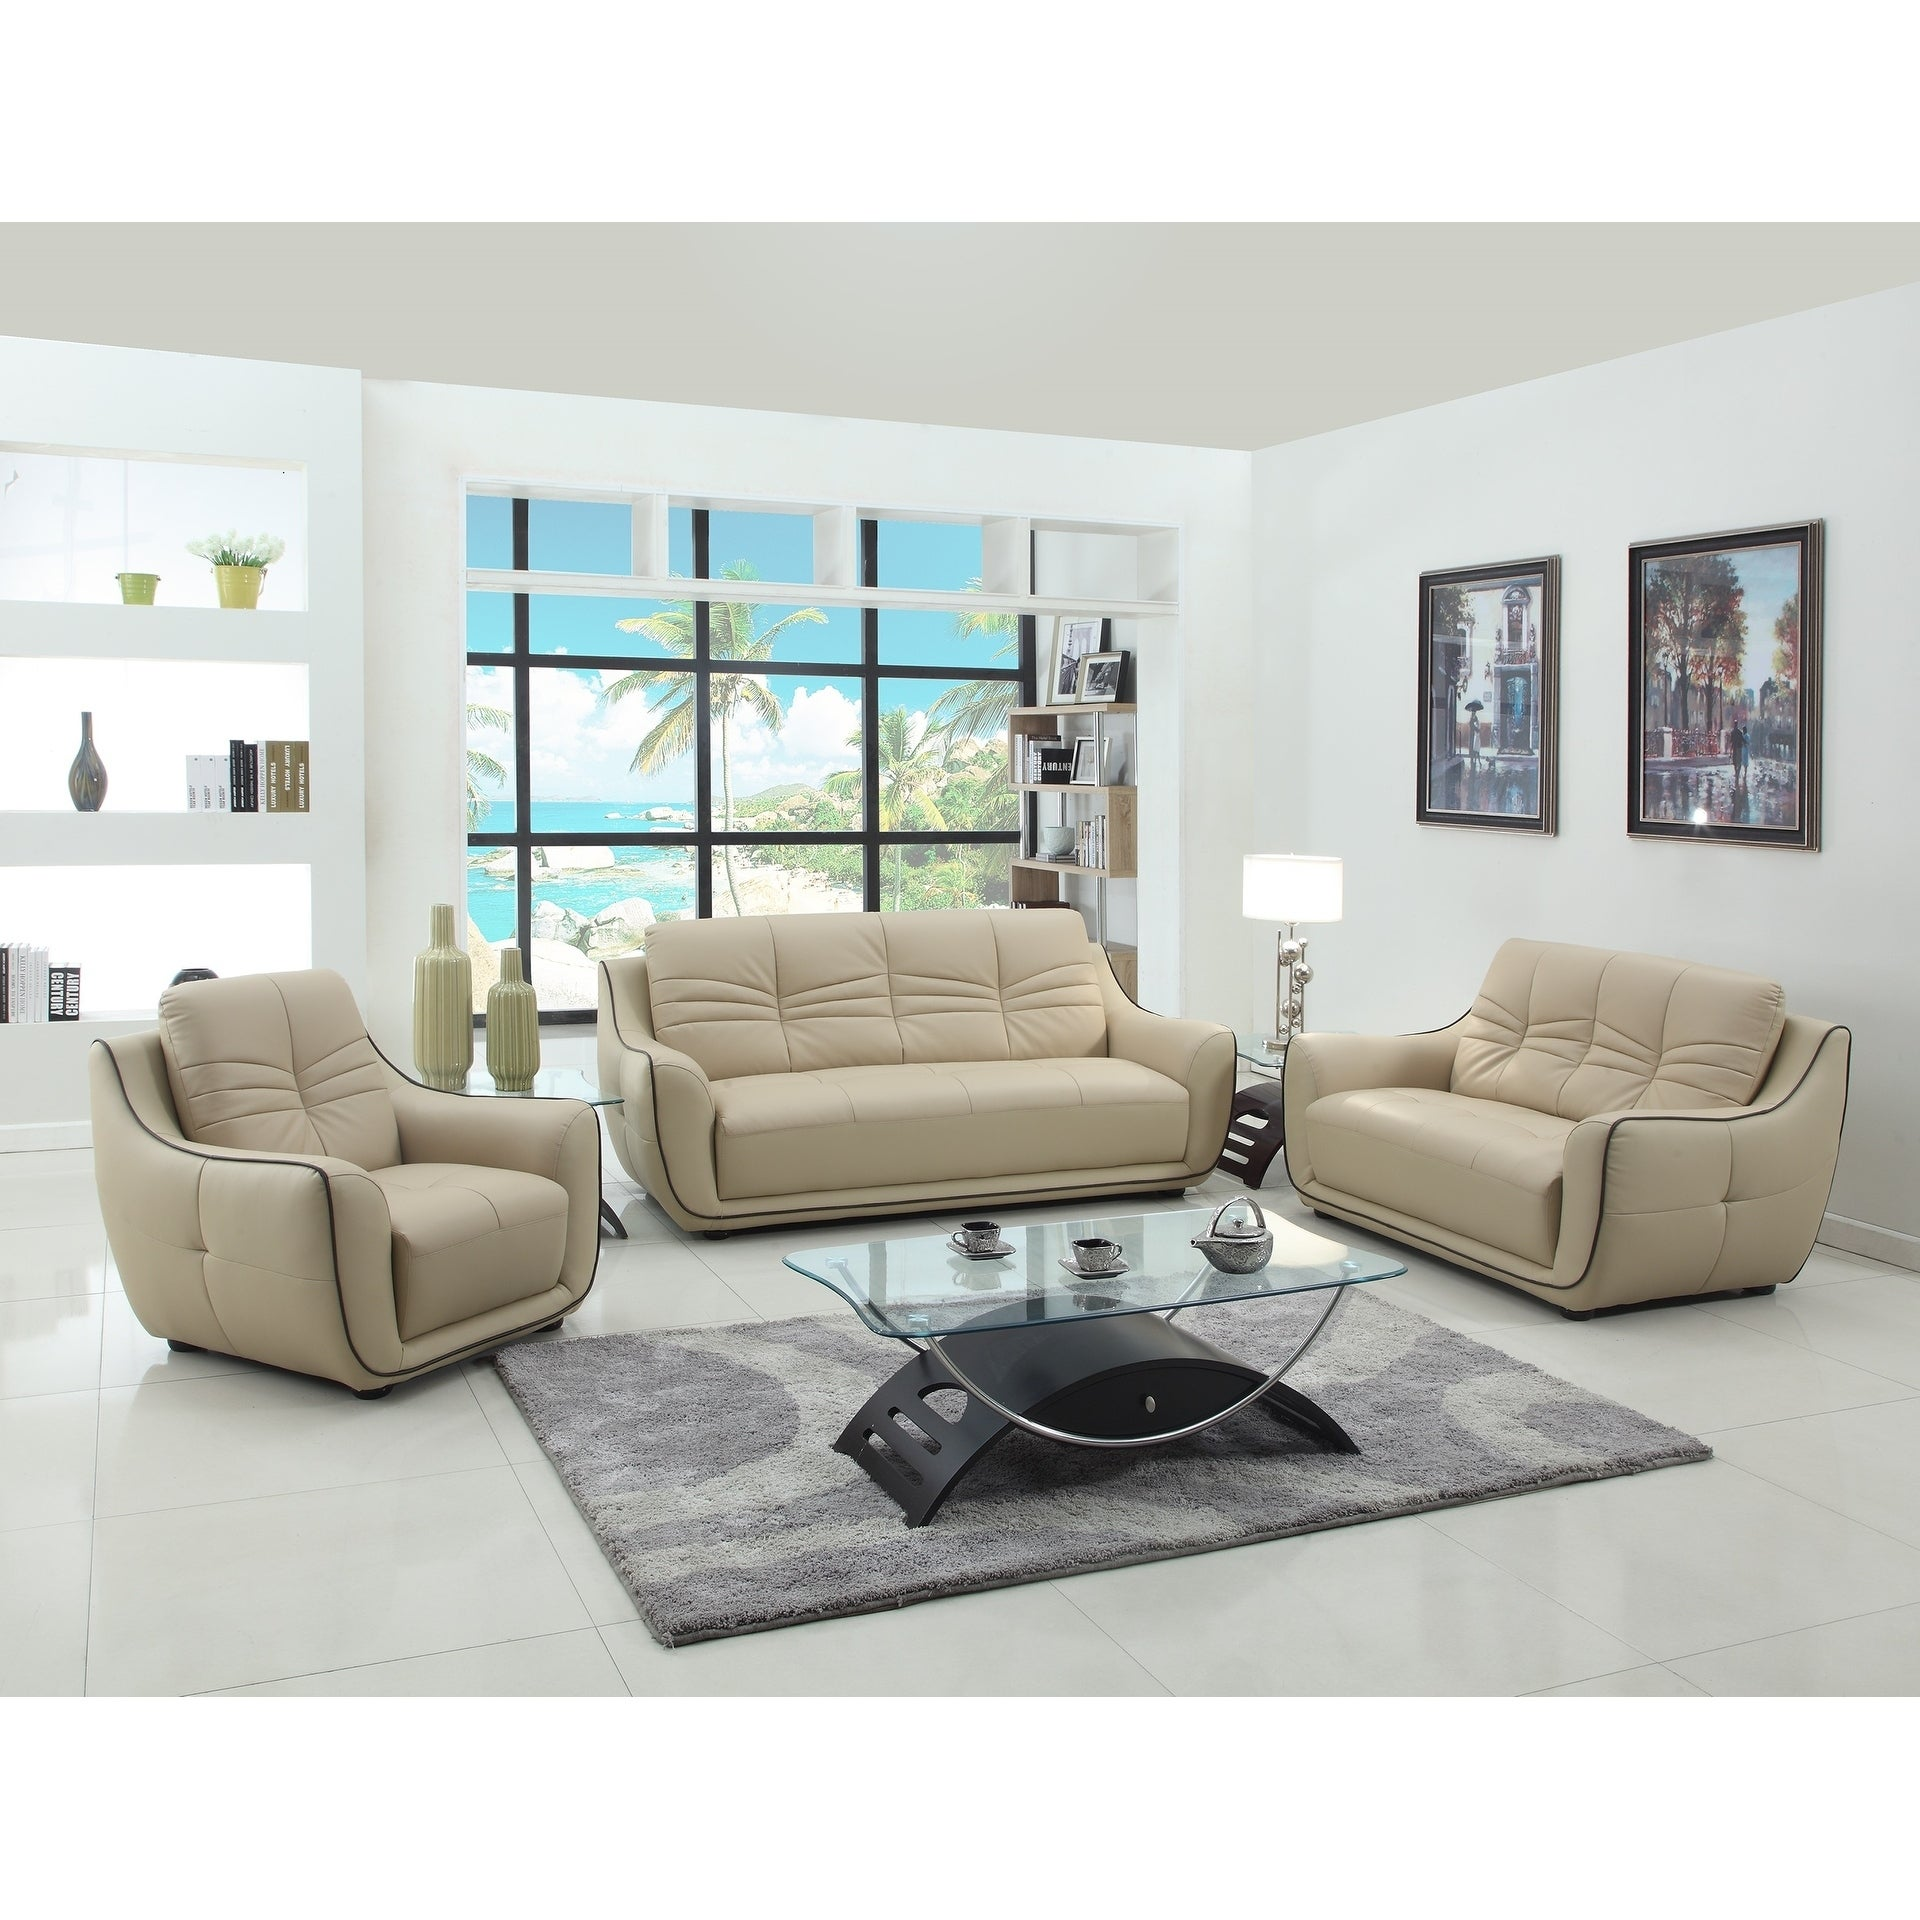 Sampson Leather Air/Match 3-Piece Living Room Sofa Set - Free ...